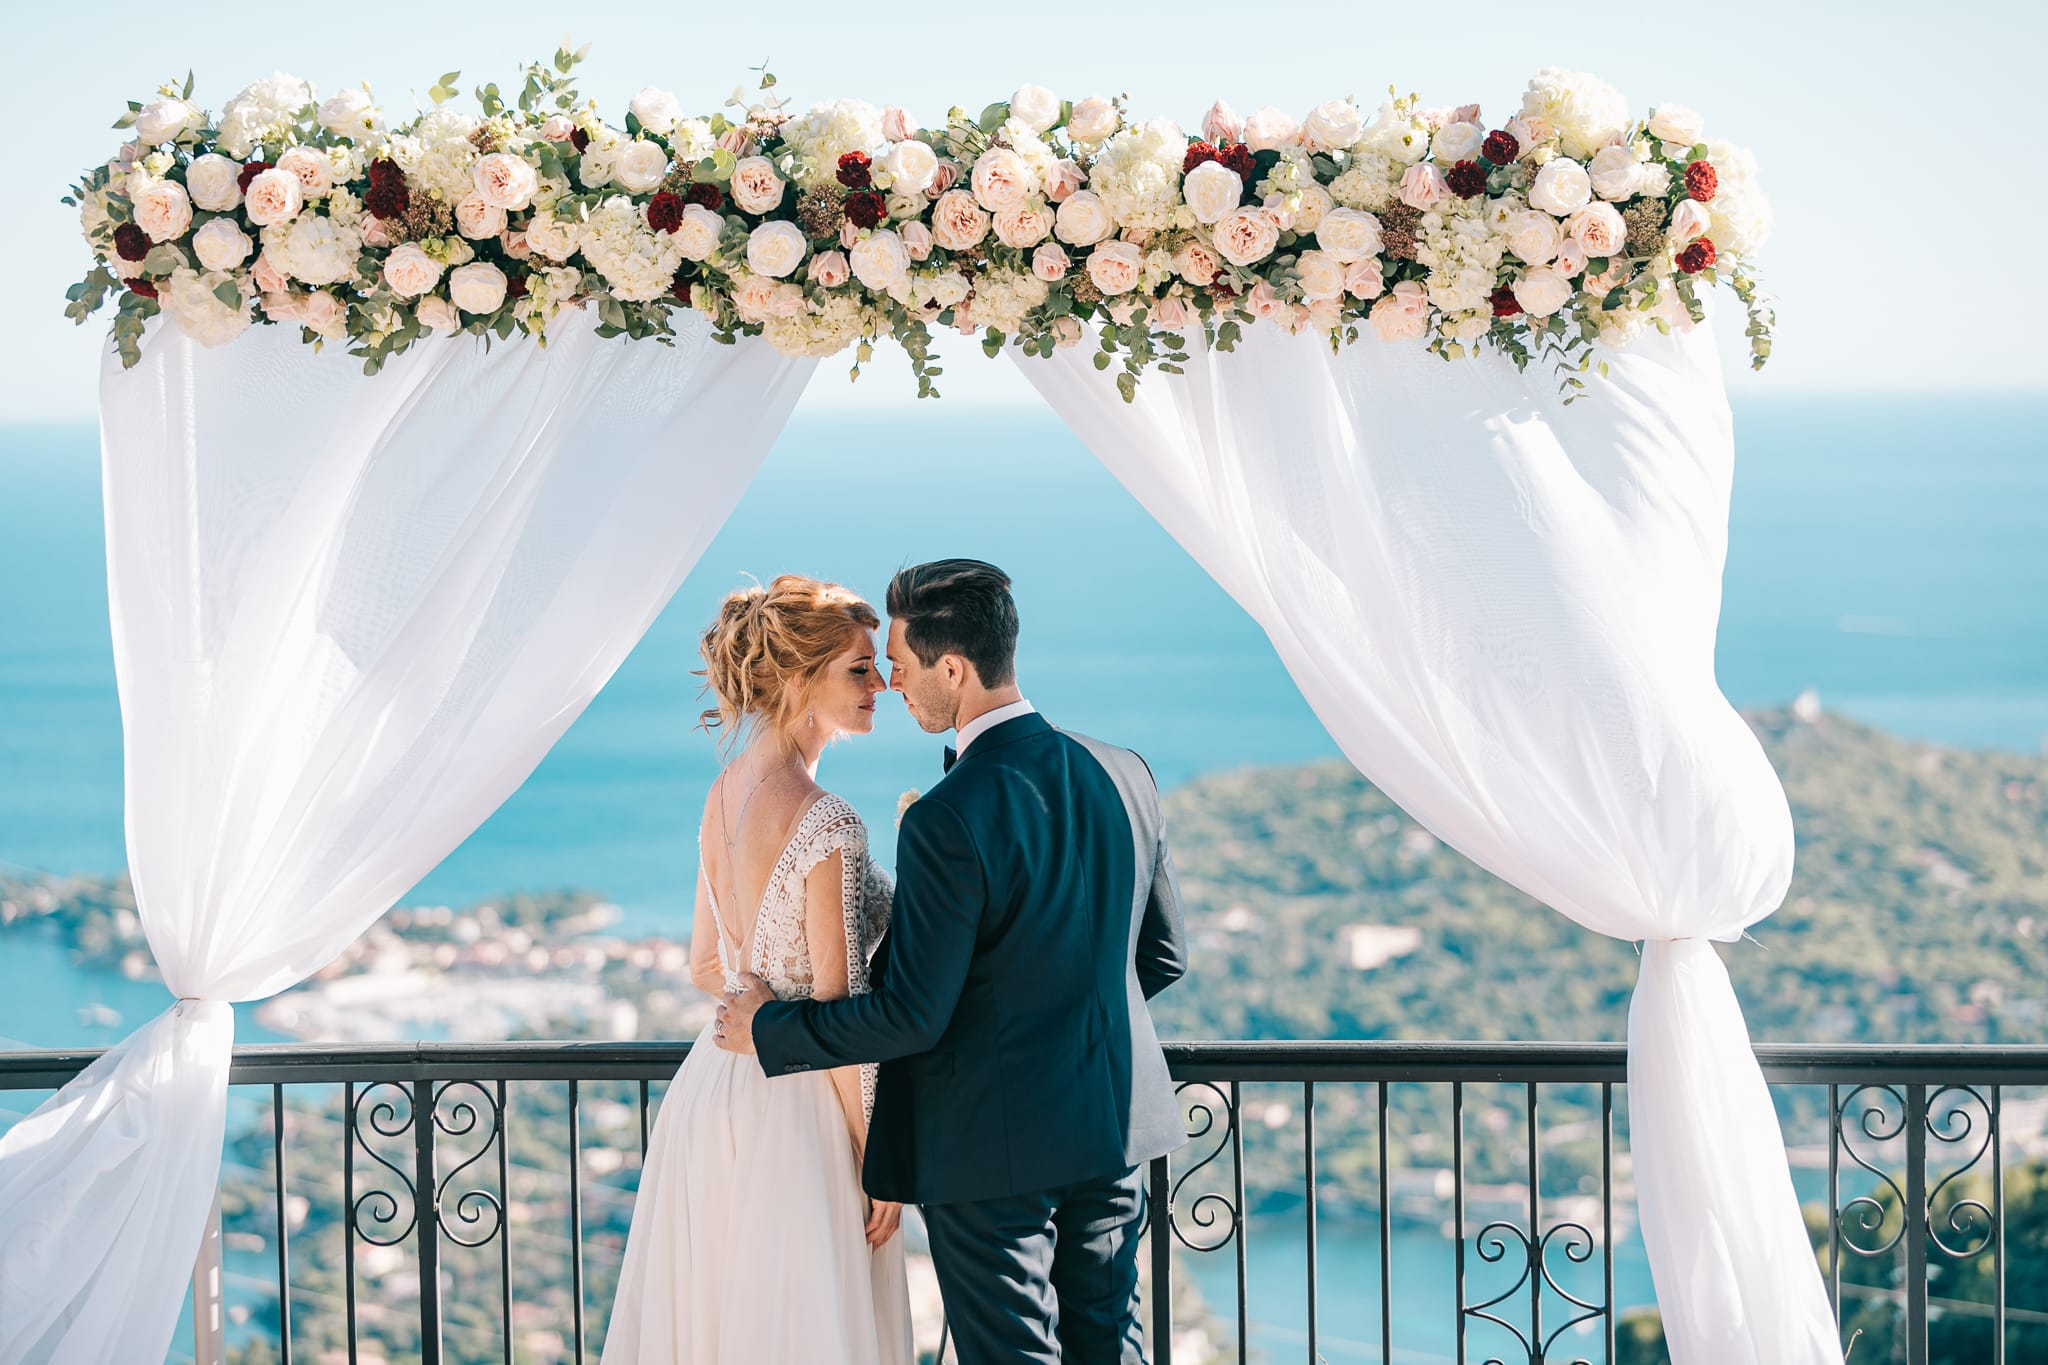 Costi-Moiceanu-Photographer-CM-Photography-Wedding-Mariage-French-Riviera-Cote-D-Azur-Alpes-Maritimes-45